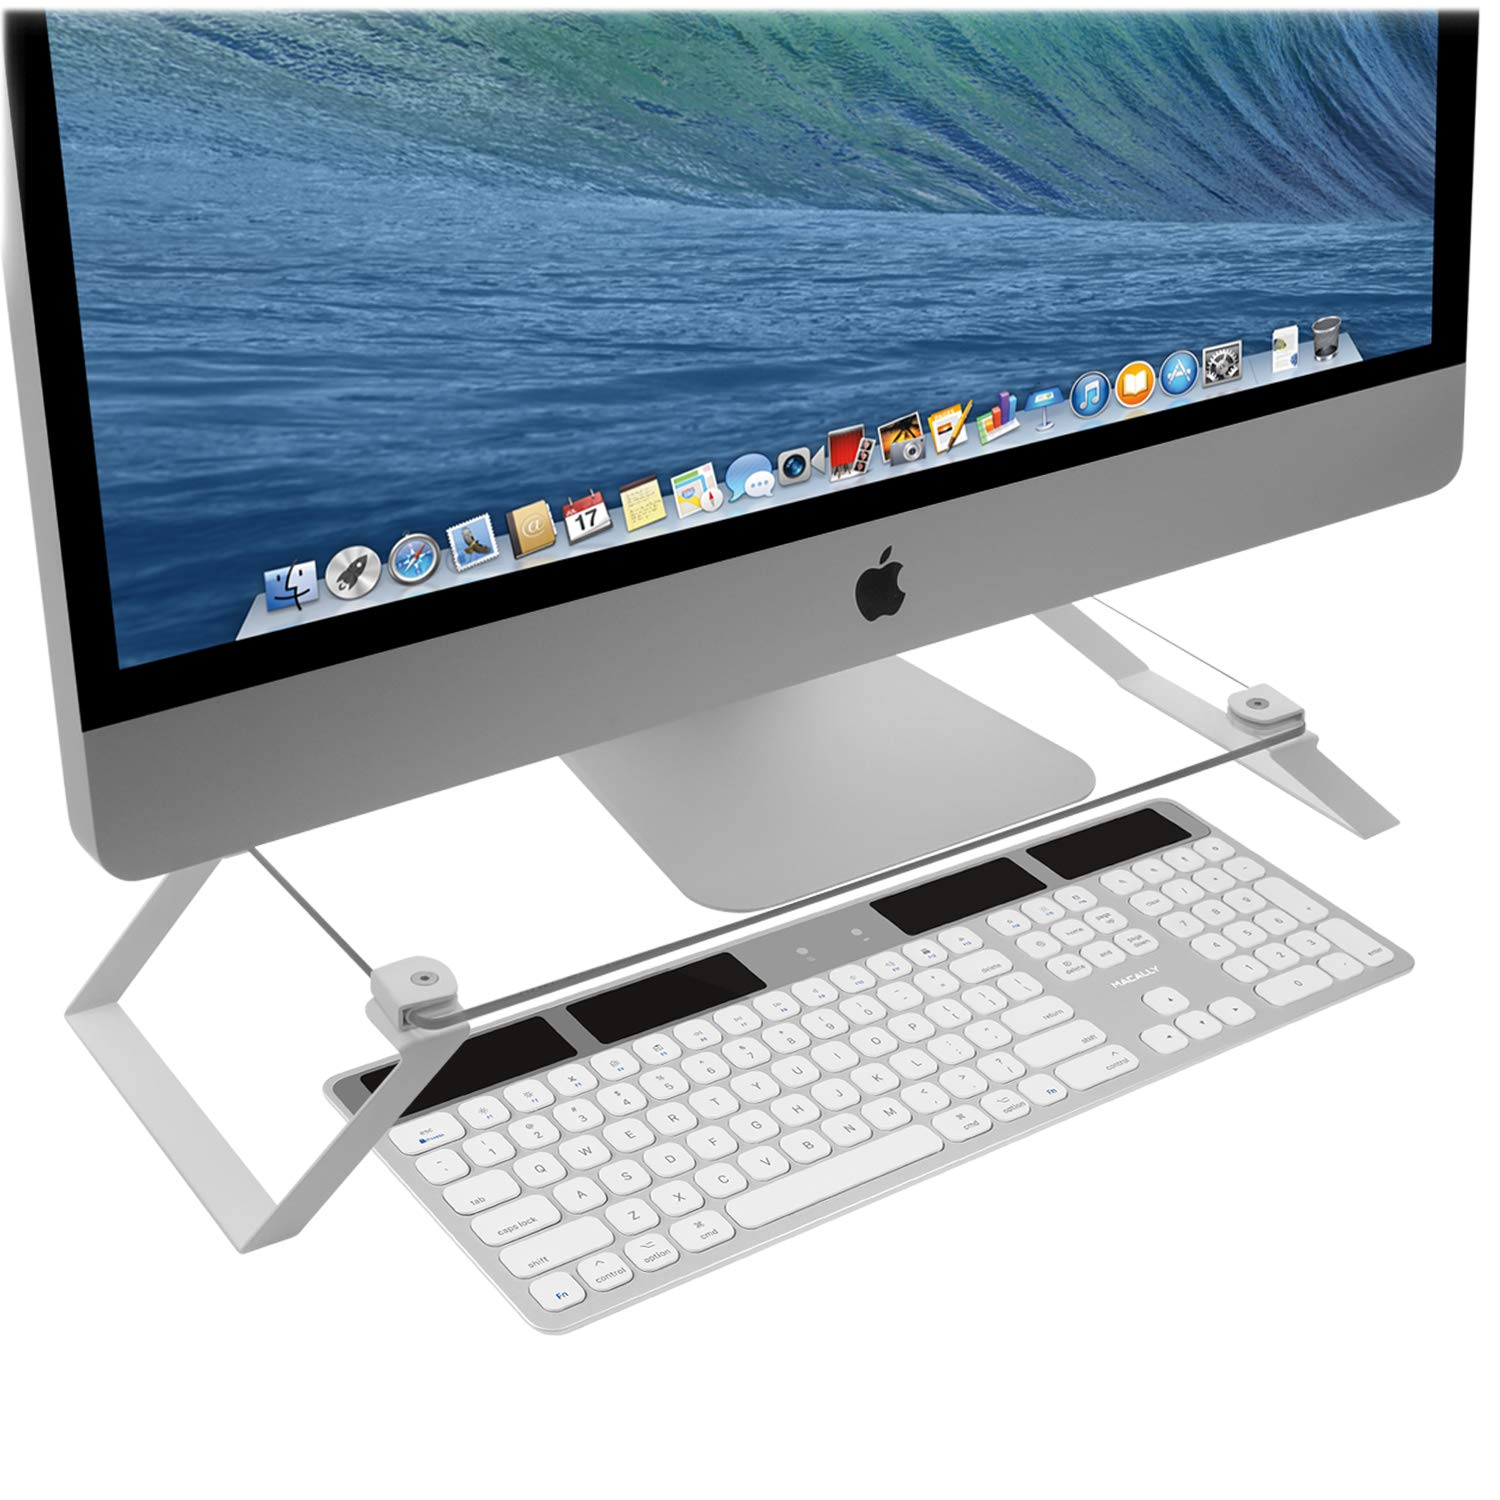 Beau Macally Clear Computer Monitor Riser Stand [Tempered Glass], Desktop Screen  Holder For TV Display U0026 Laptop With Desk Shelf Storage Space For Keyboard  ...